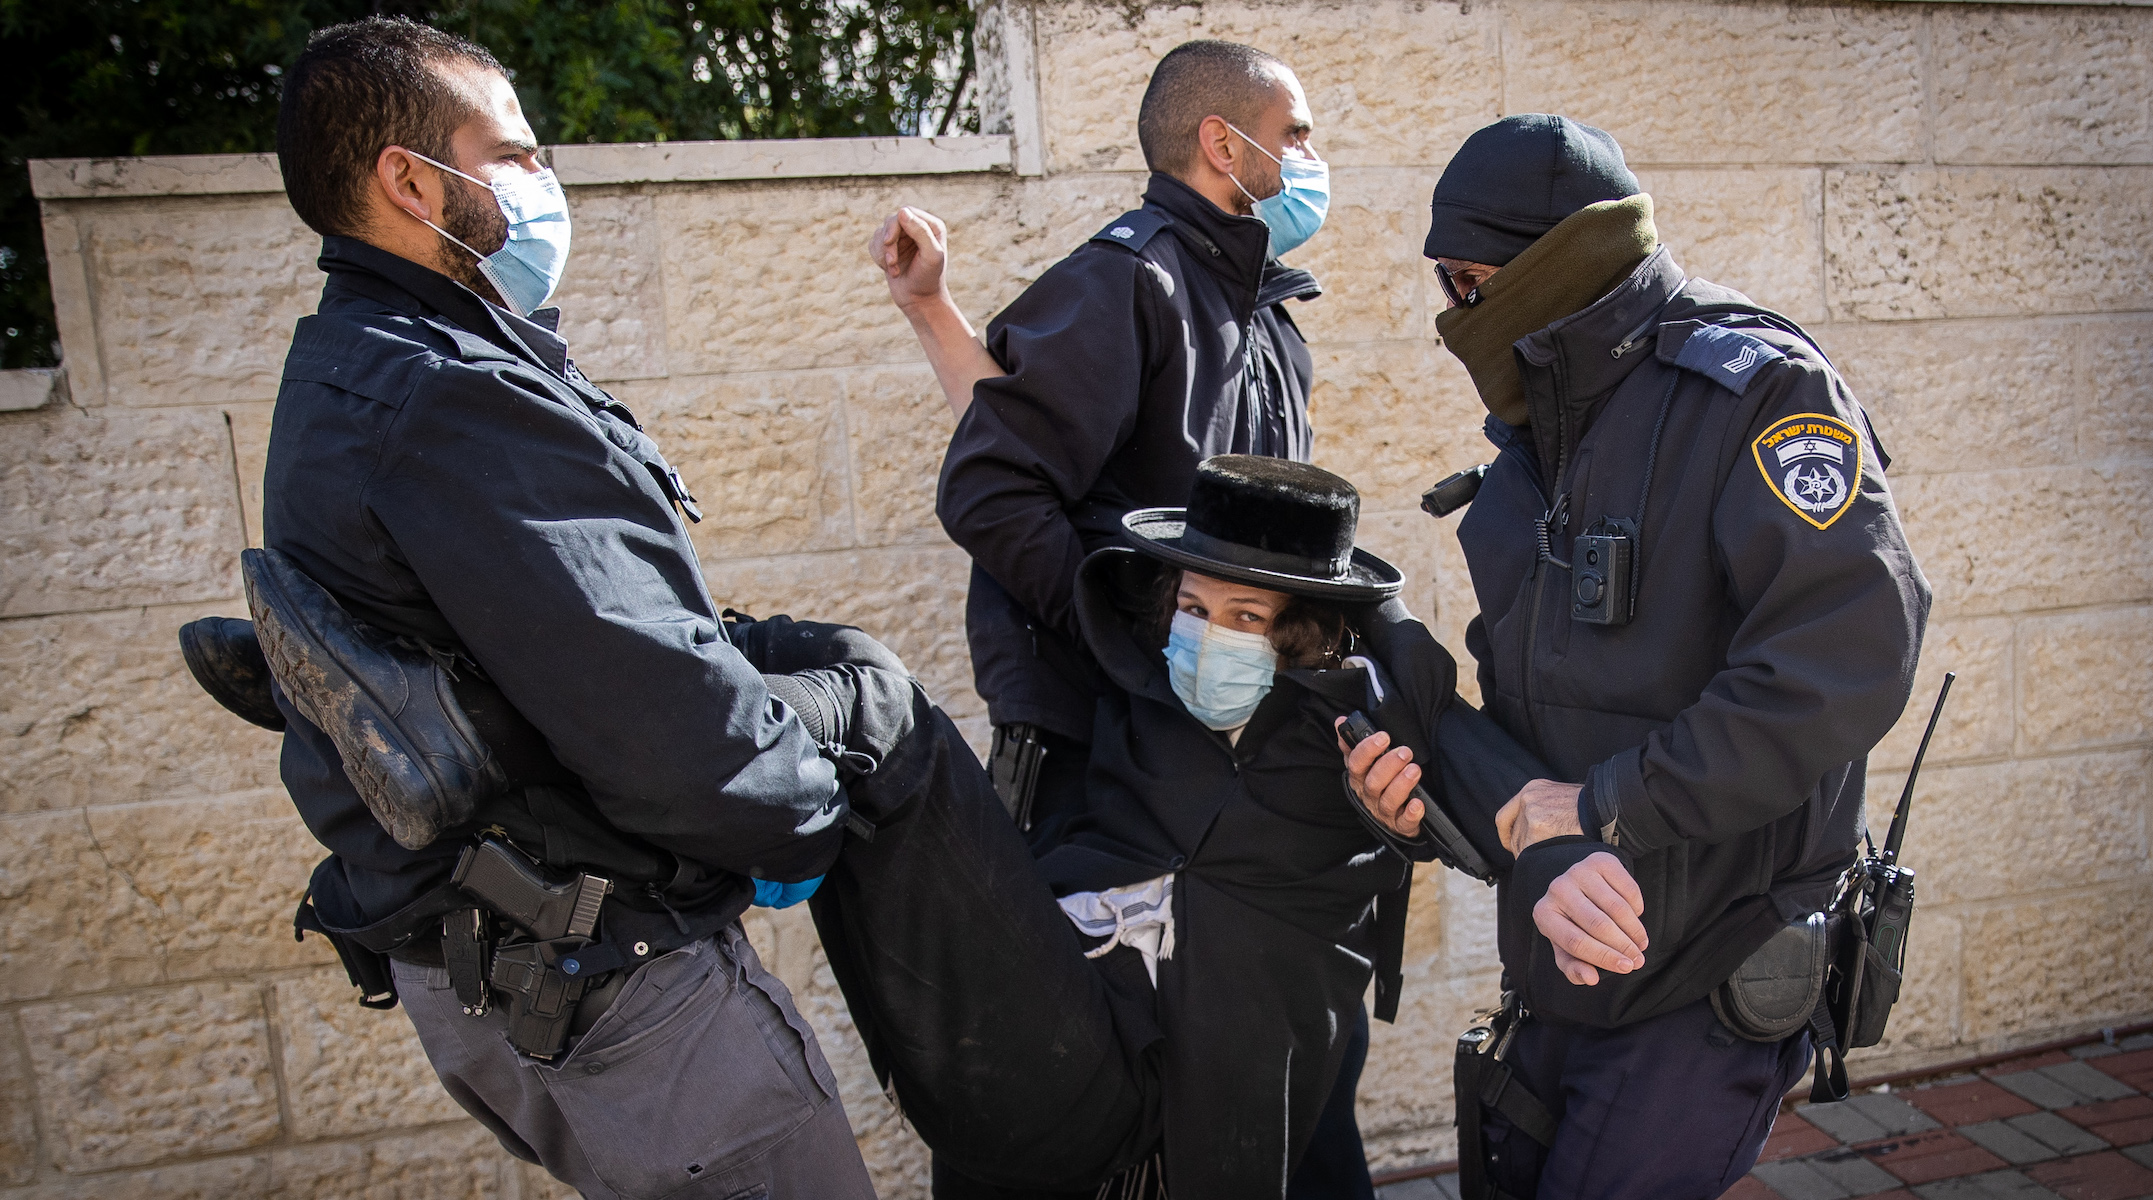 7 Israeli police officers injured in clashes with Orthodox protesters over COVID-19 restrictions